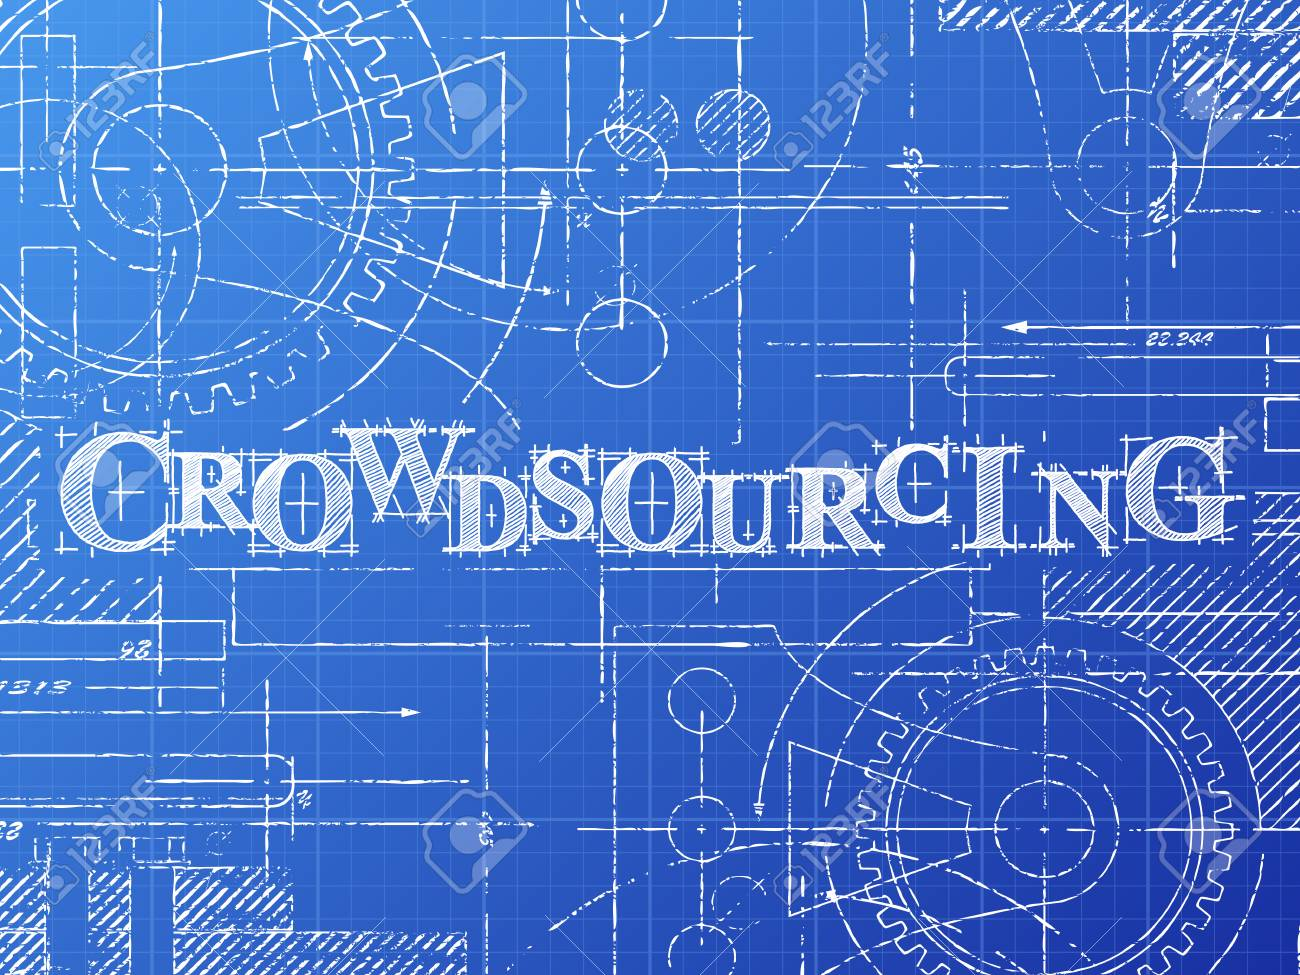 Crowdsourcing text with gear wheels hand drawn on blueprint crowdsourcing text with gear wheels hand drawn on blueprint technical drawing background stock vector 88356900 malvernweather Gallery